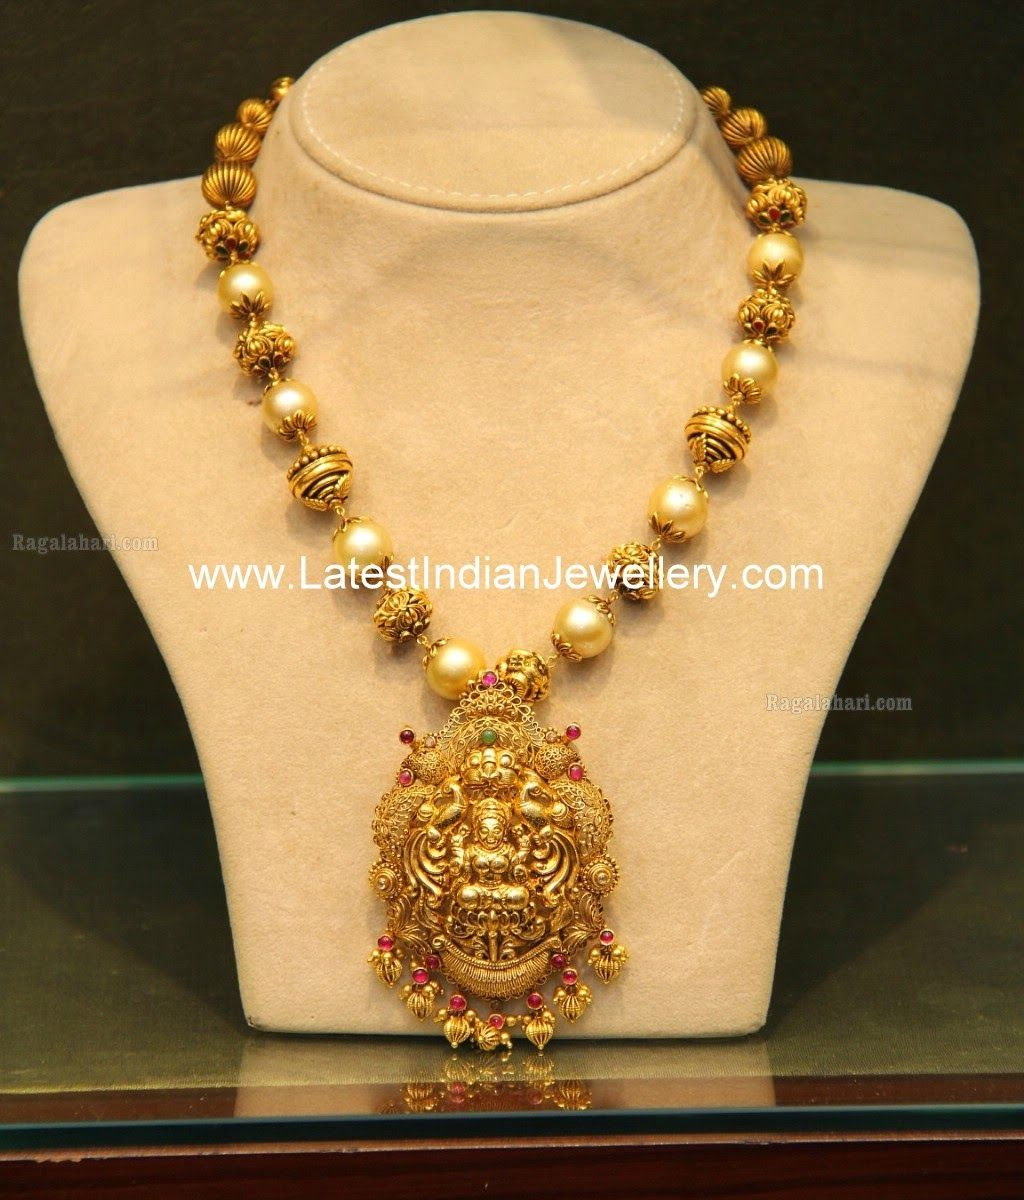 Malabar Gold Temple Jewellery